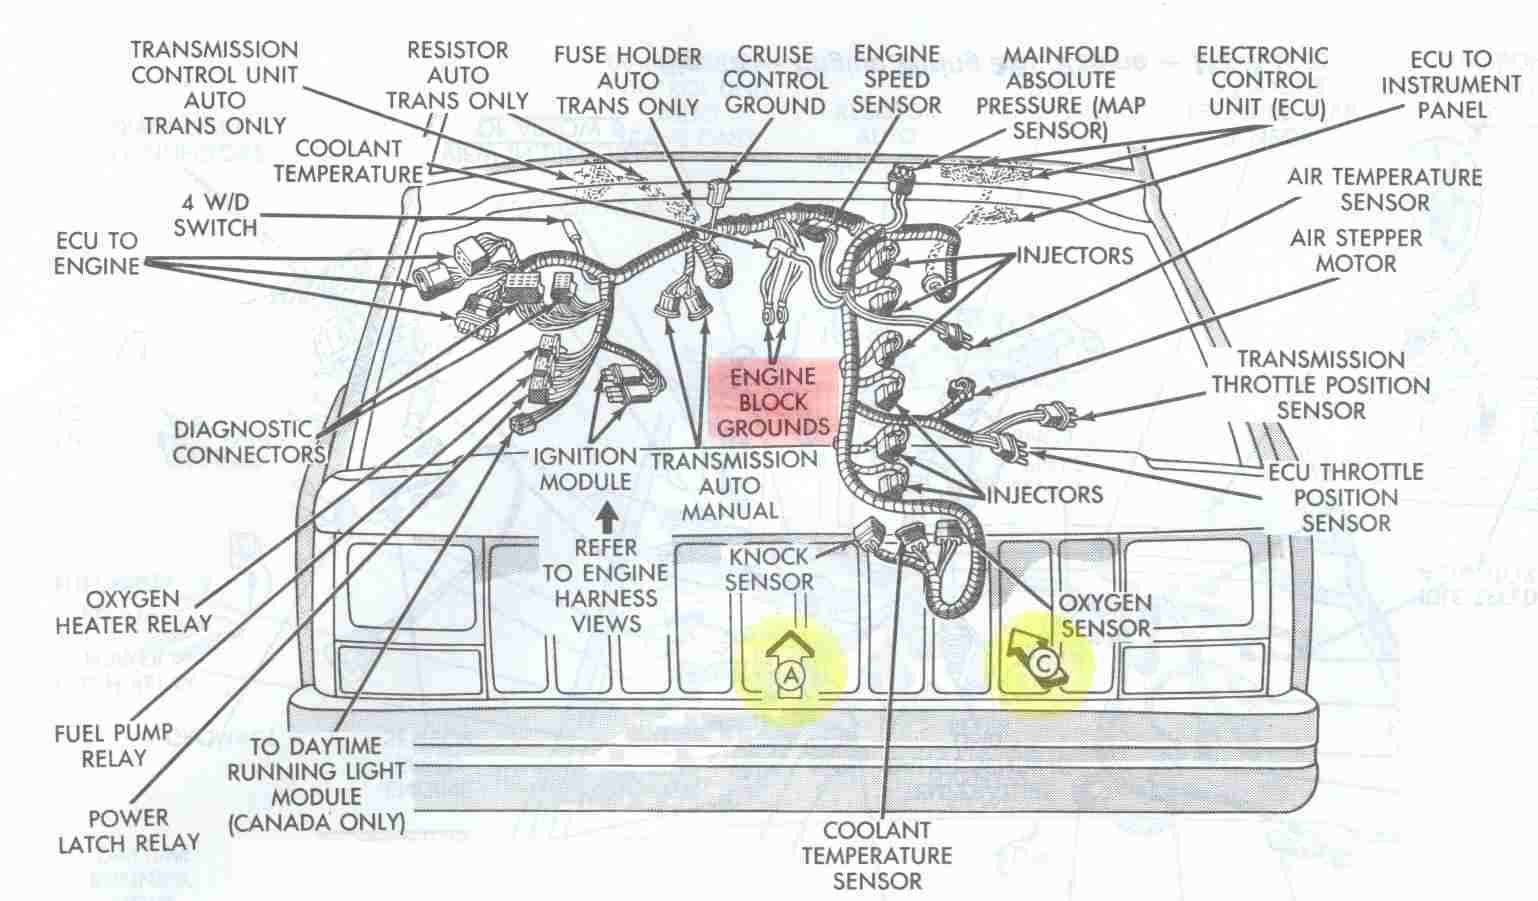 ab0134a7d9e021431187af597eb4aeca engine bay schematic showing major electrical ground points for 1991 jeep cherokee wiring diagram at gsmx.co